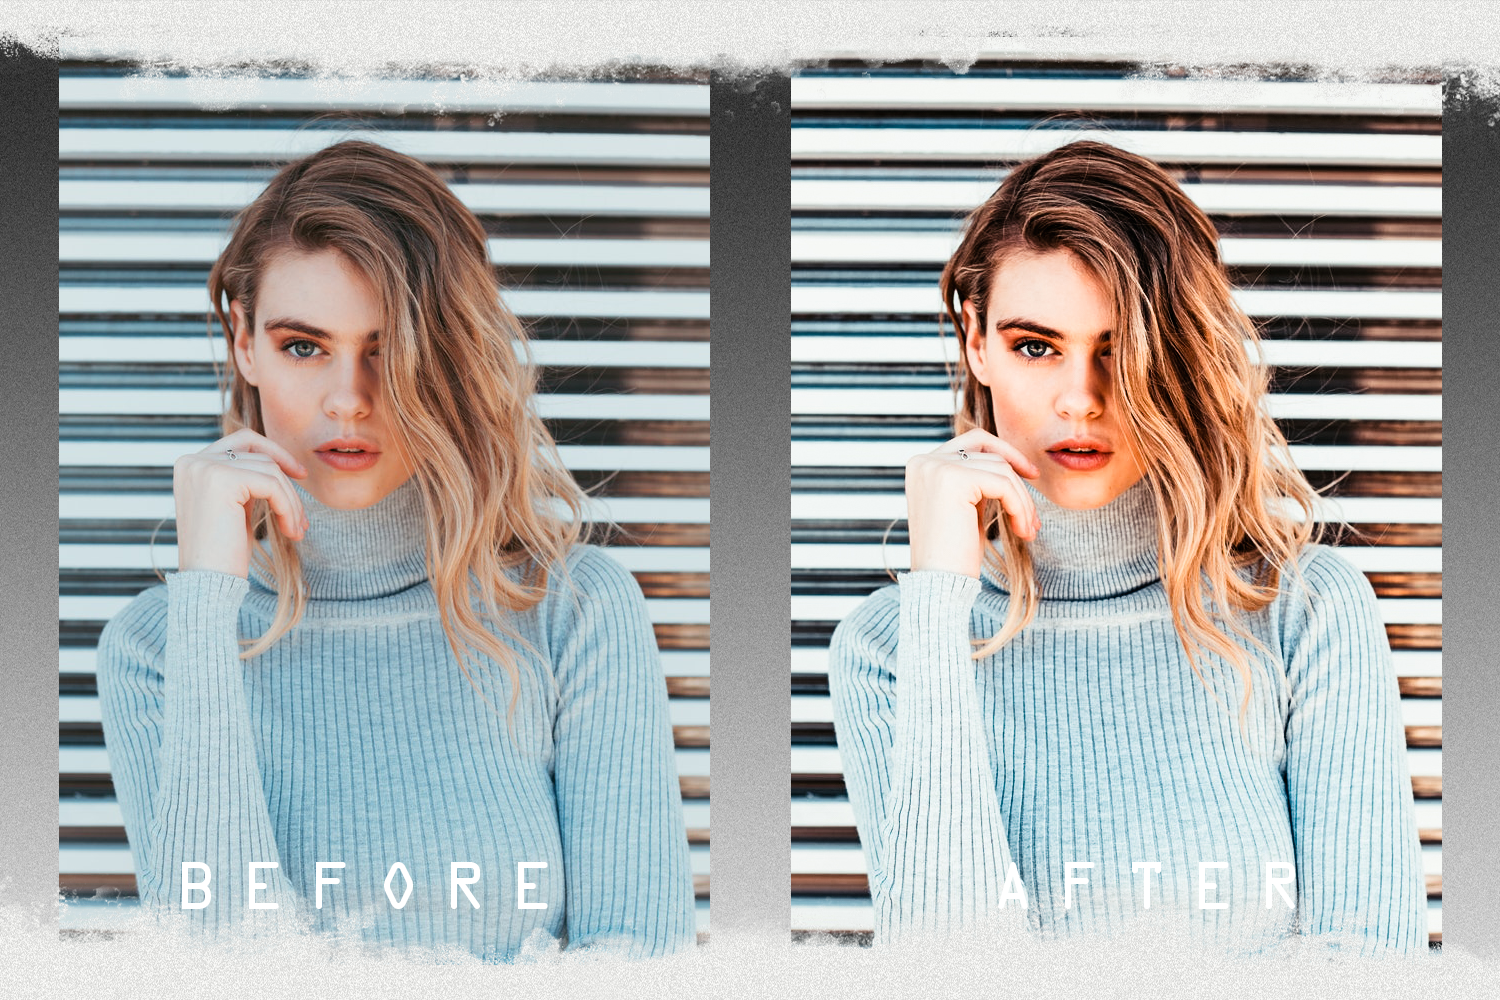 Nude presets for mobile and PC photo filter, photo effect example image 2